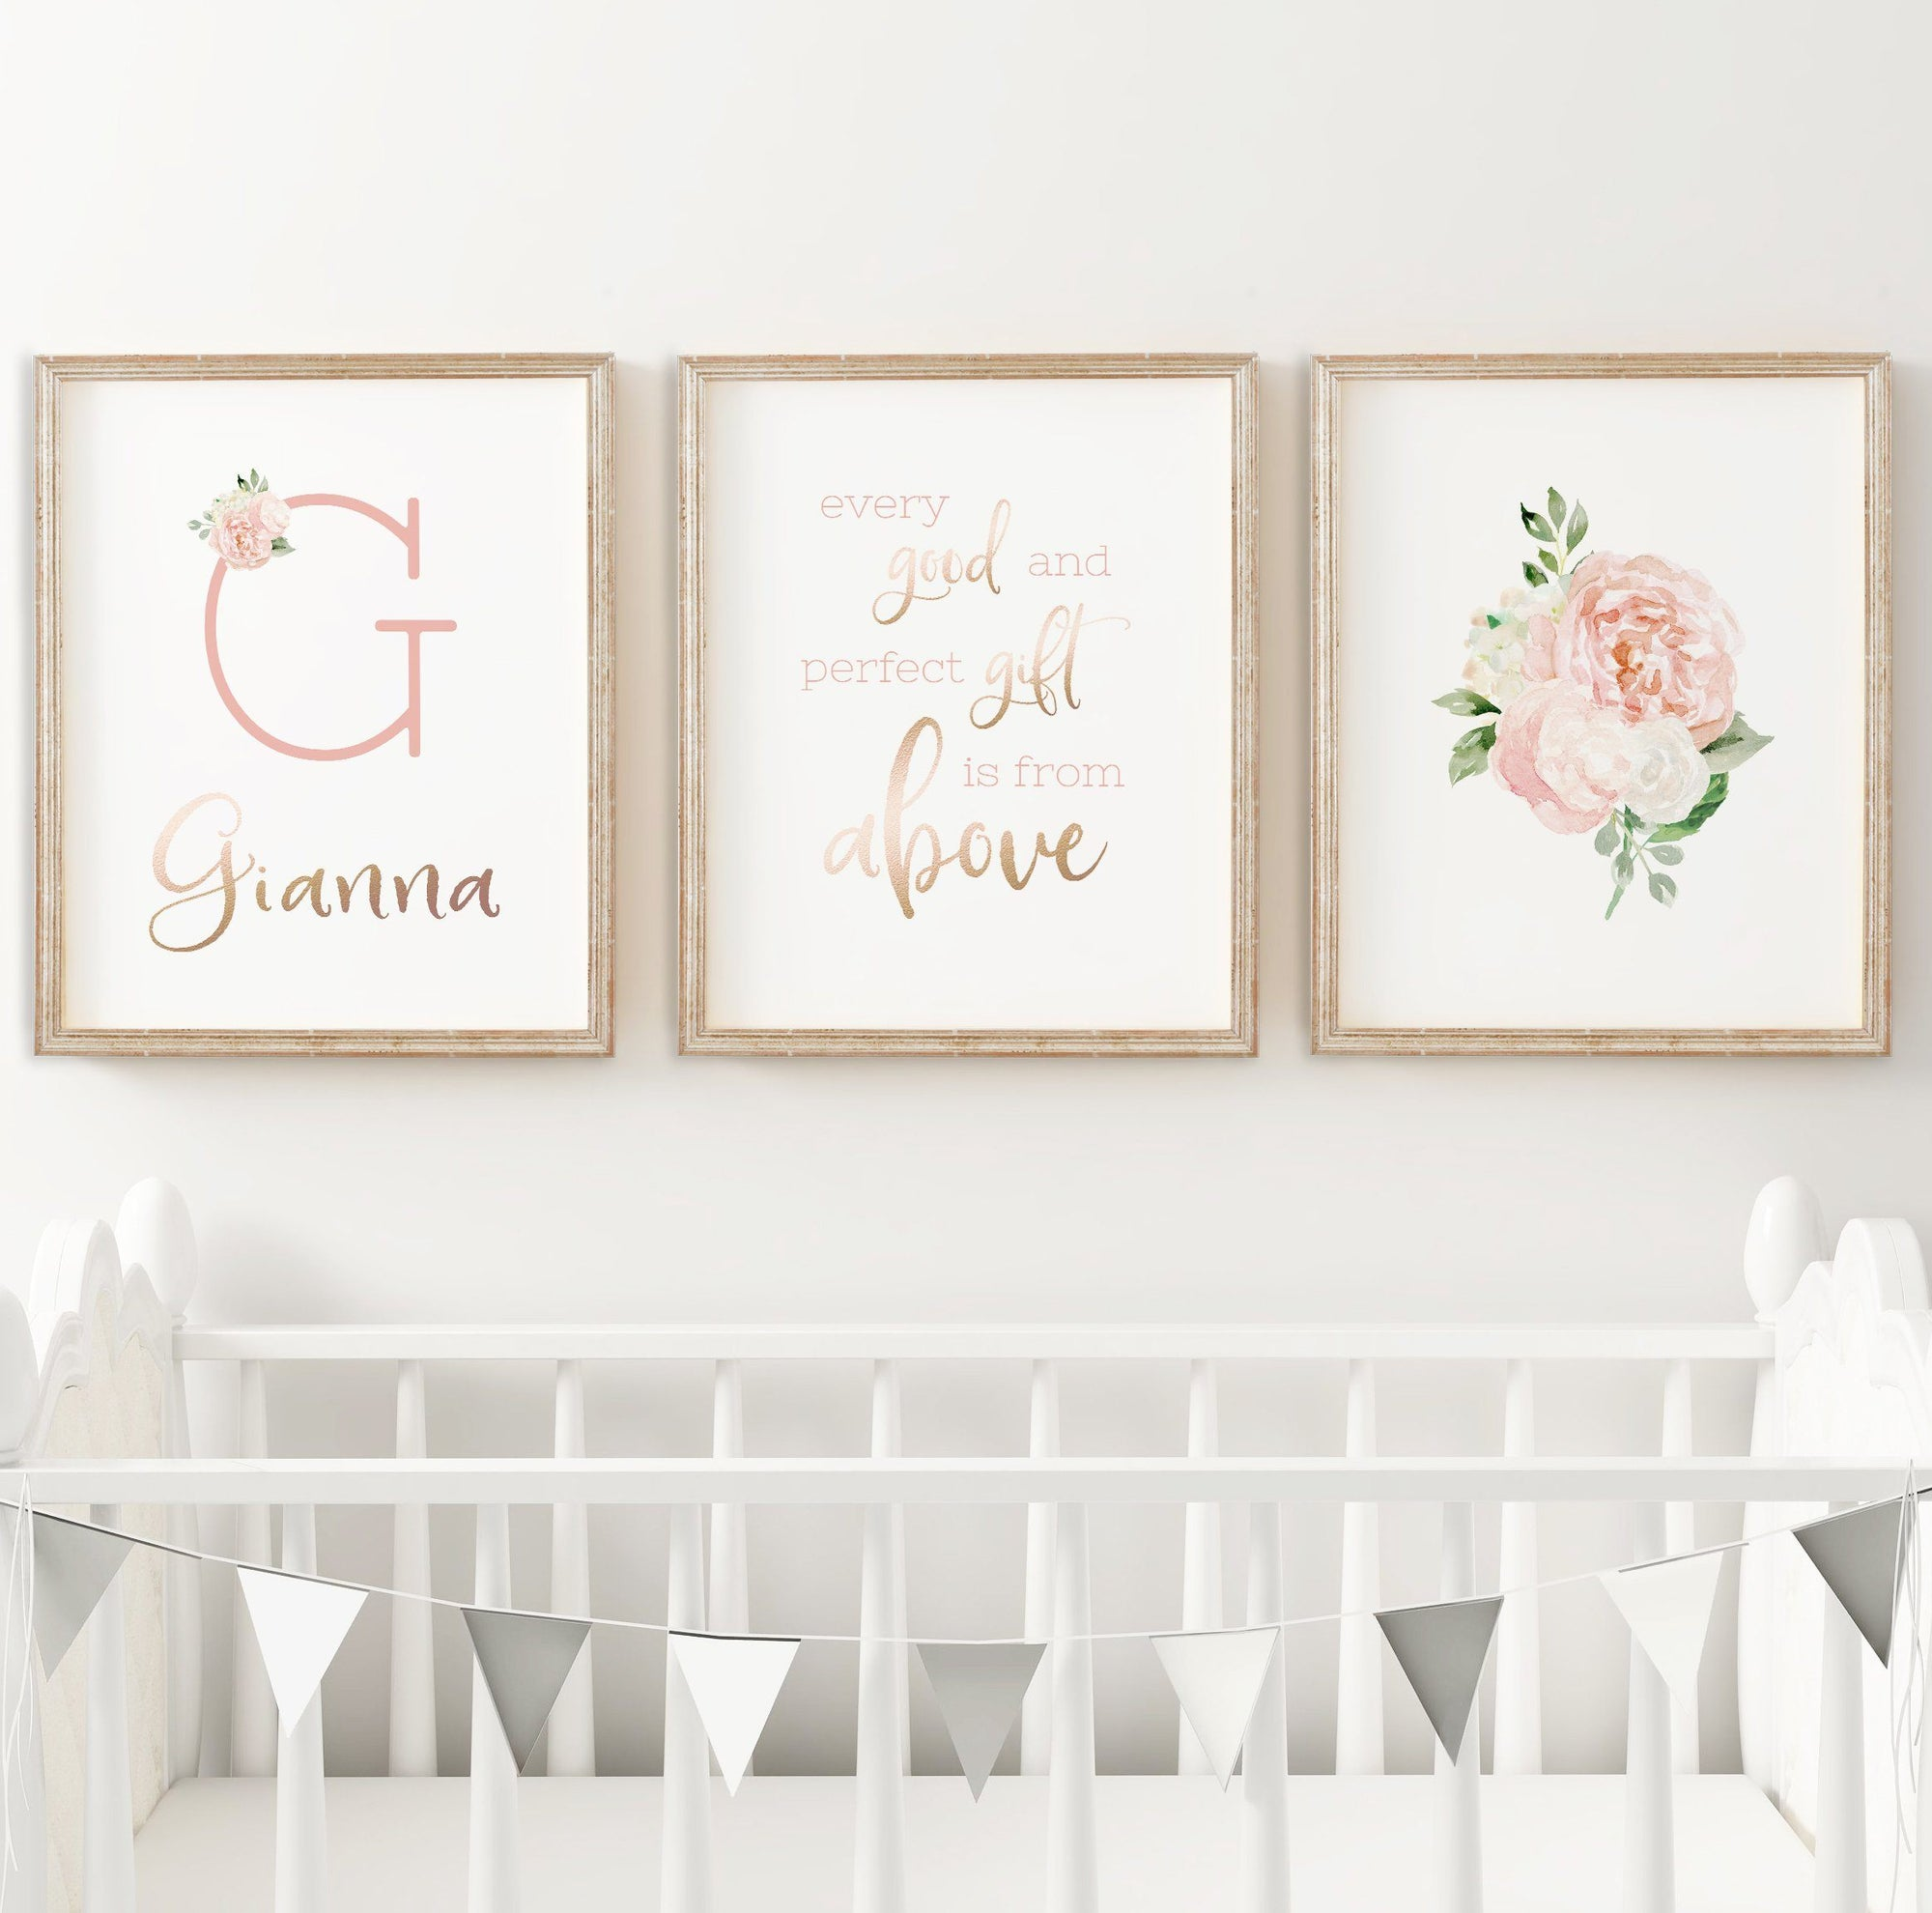 Dark Blush #6 // Set of 3 Prints Nursery Wall Decor for a Girl TheGracefulGoose